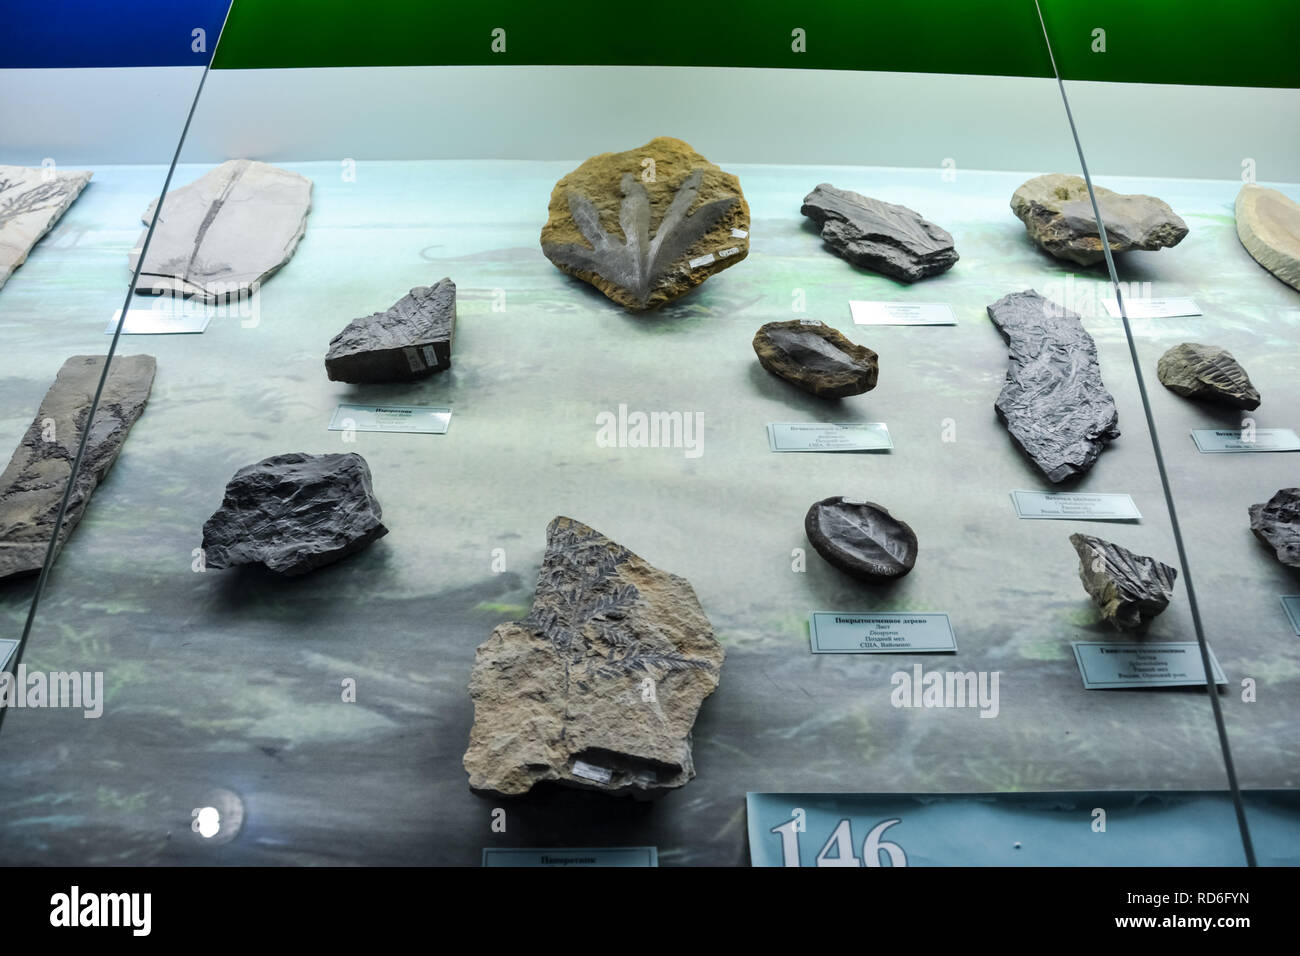 Geological Museum named after Vernadsky, Moscow, Russia - June 11, 2018: Exhibits of the Museum named after Vernadsky in Moscow, Fossil remains of anc - Stock Image